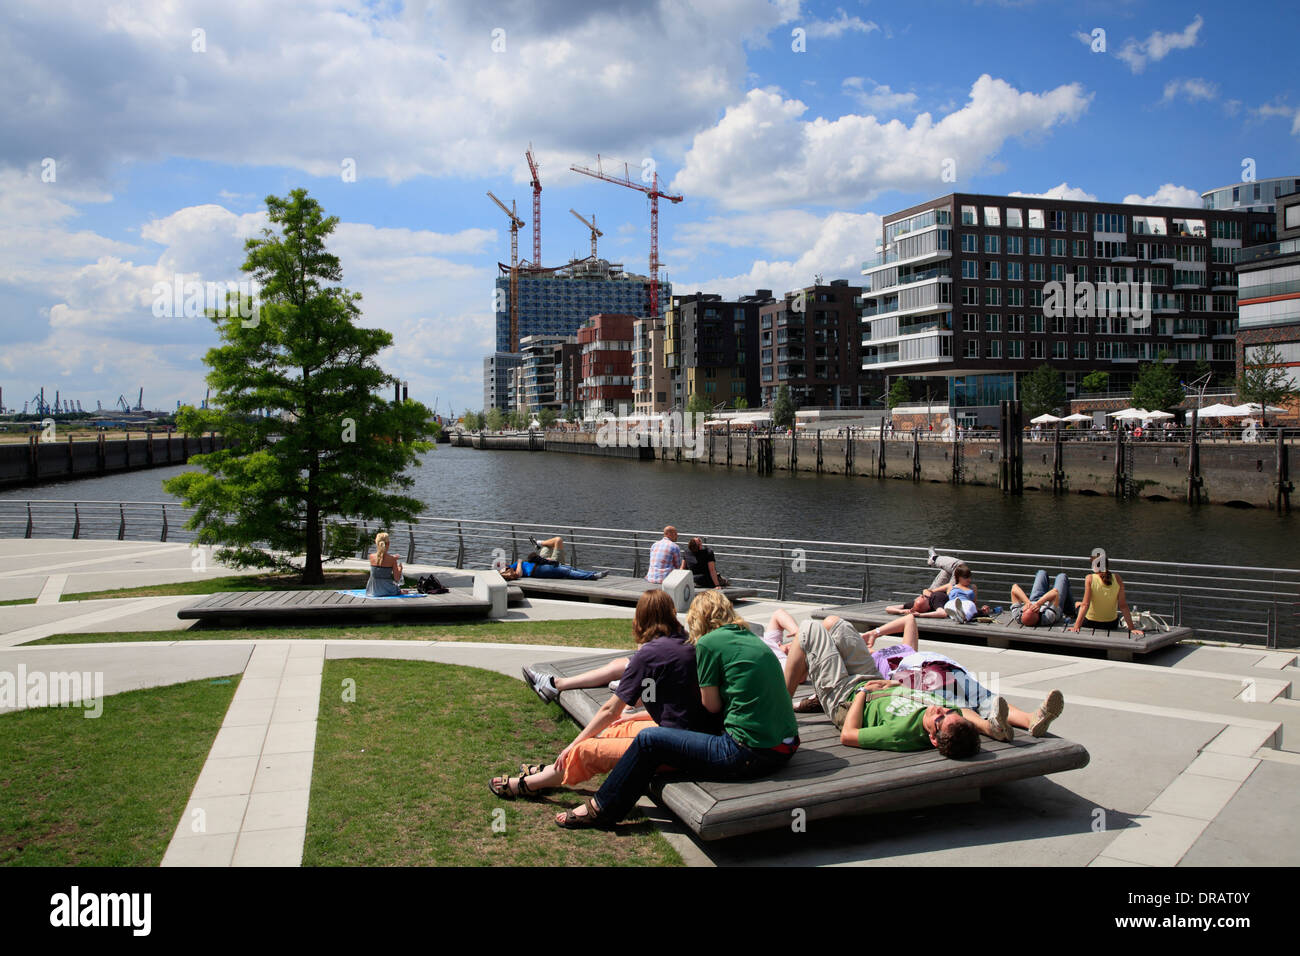 people relaxing at marco polo terraces hafencity hamburg germany stock photo royalty free. Black Bedroom Furniture Sets. Home Design Ideas